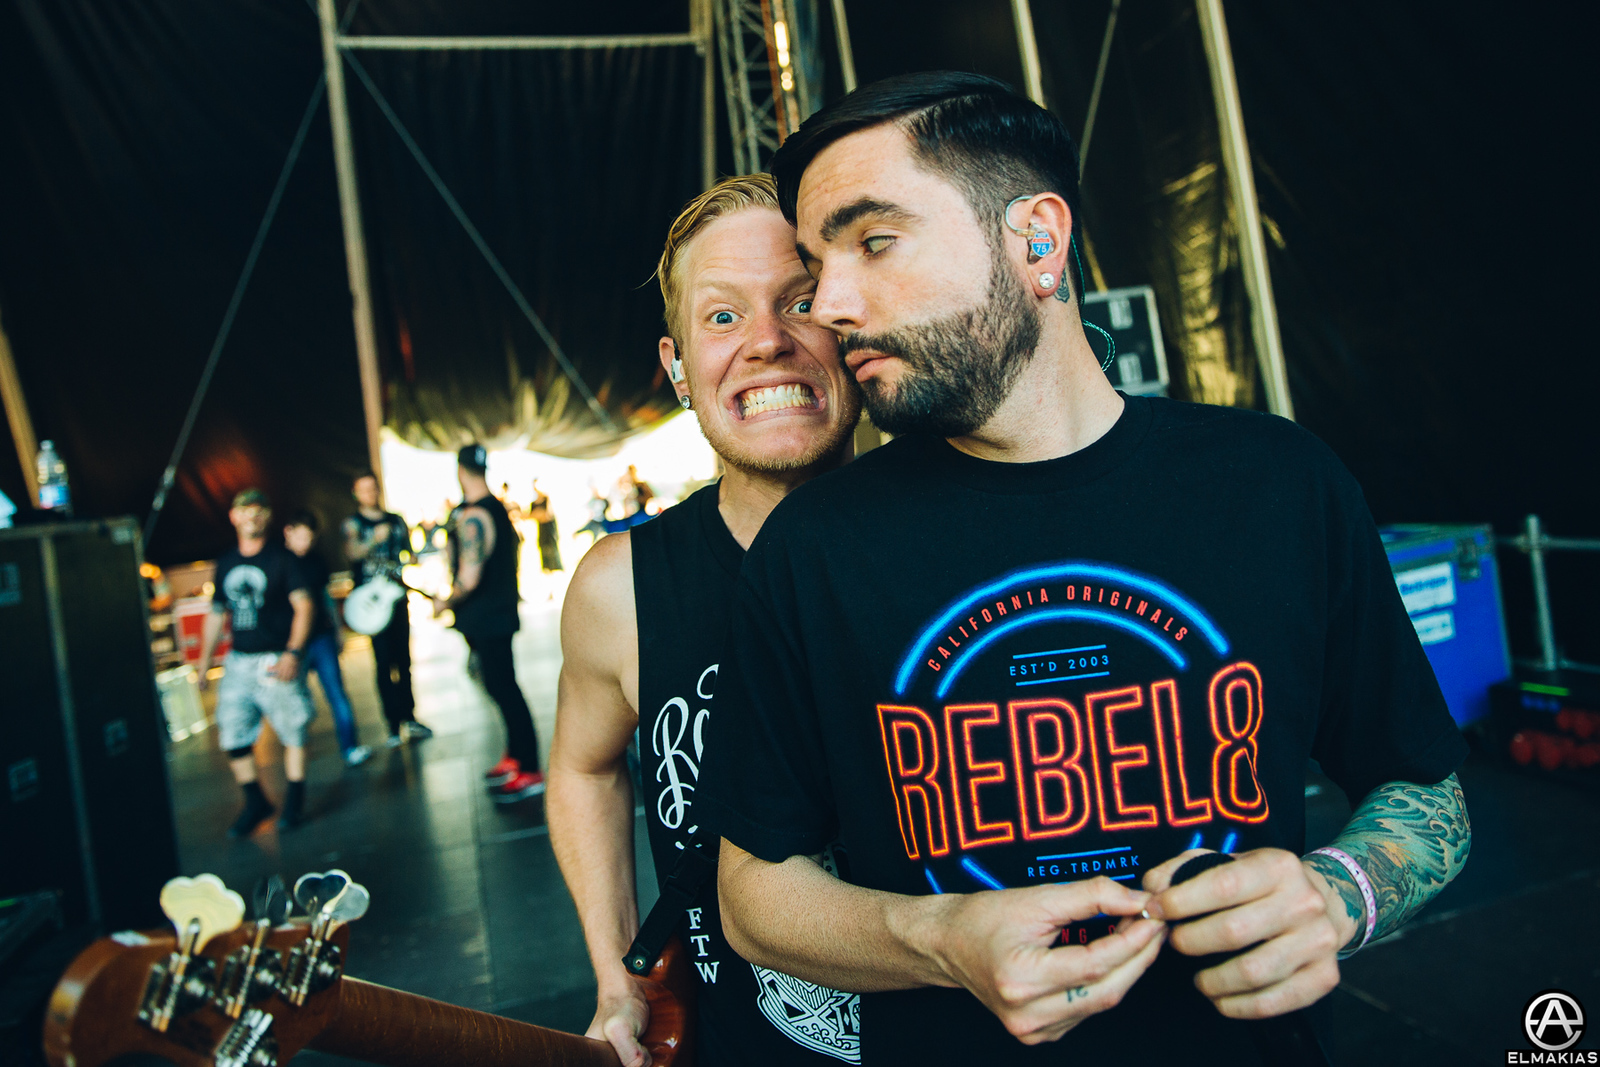 Jeremy and Josh of A Day To Remember at Greenfield Festival in Interlaken, Switzerland